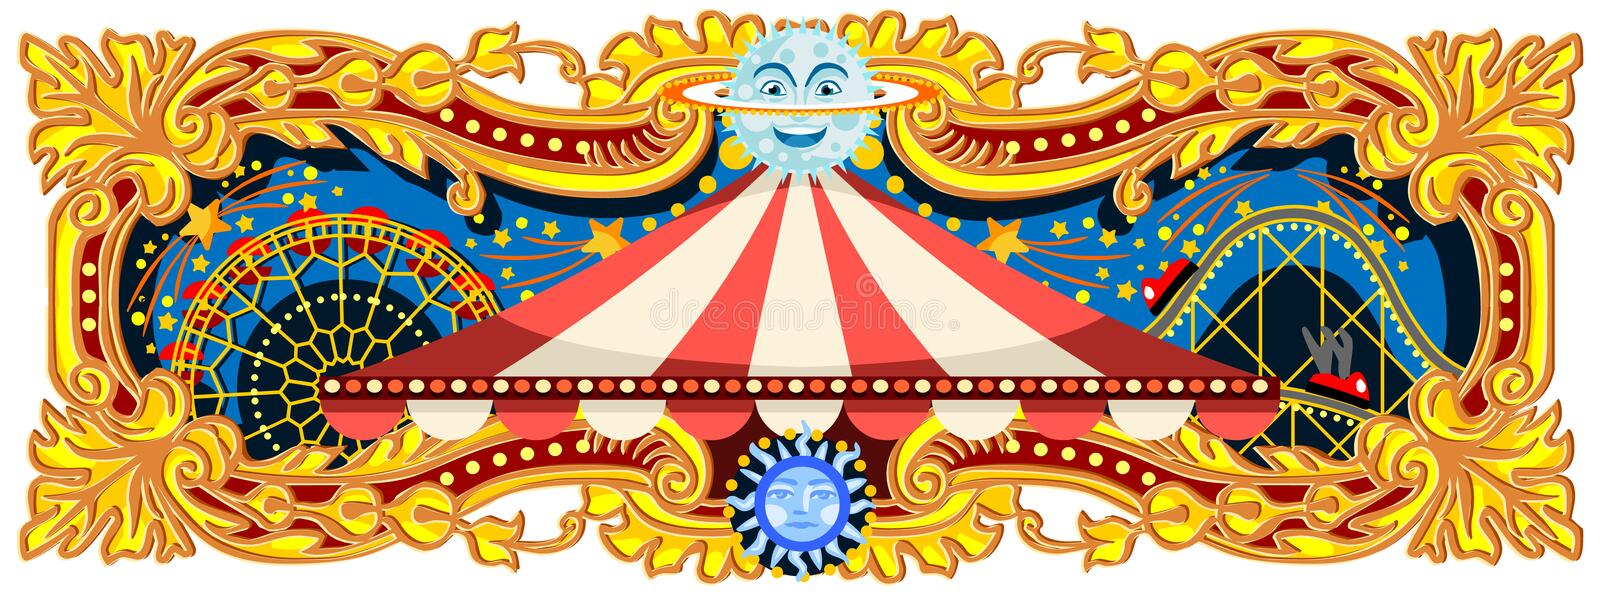 Carnival Banner Circus Theme Blog. Carnival banner circus template. Circus vintage theme for kids birthday party invitation or post. Quality vector illustration stock illustration